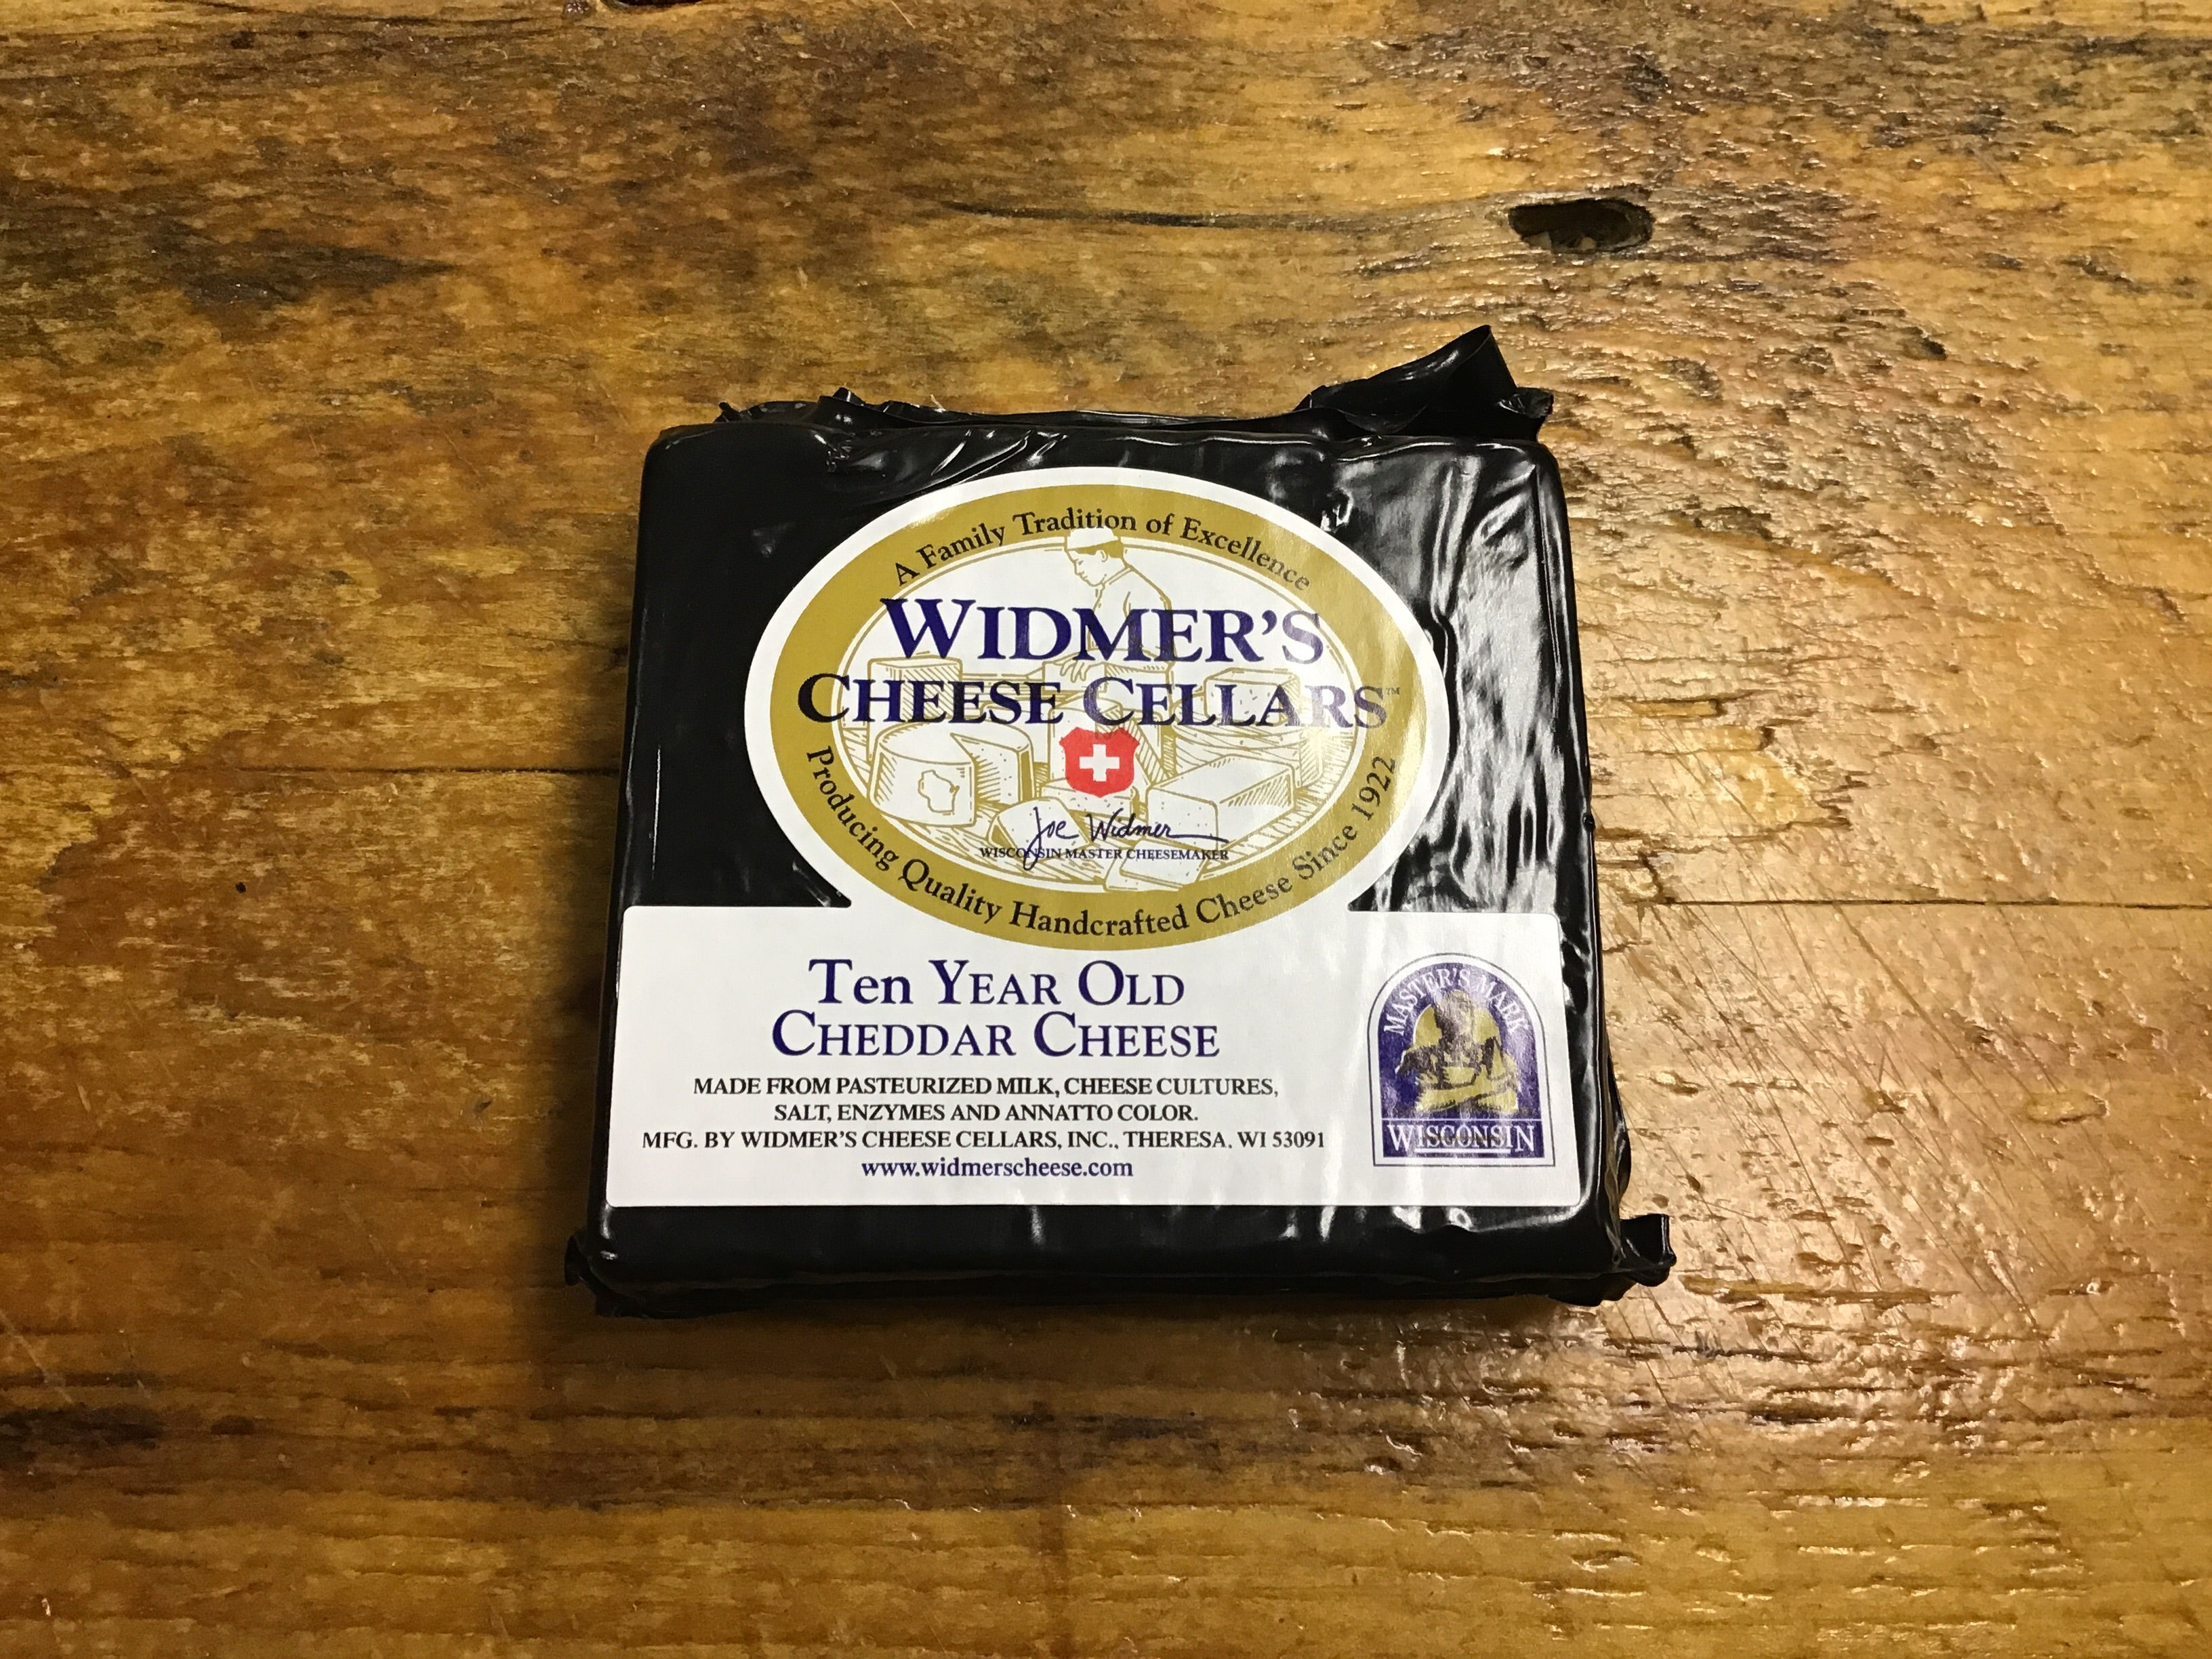 Ten Year Old Cheddar Cheese Widmer's